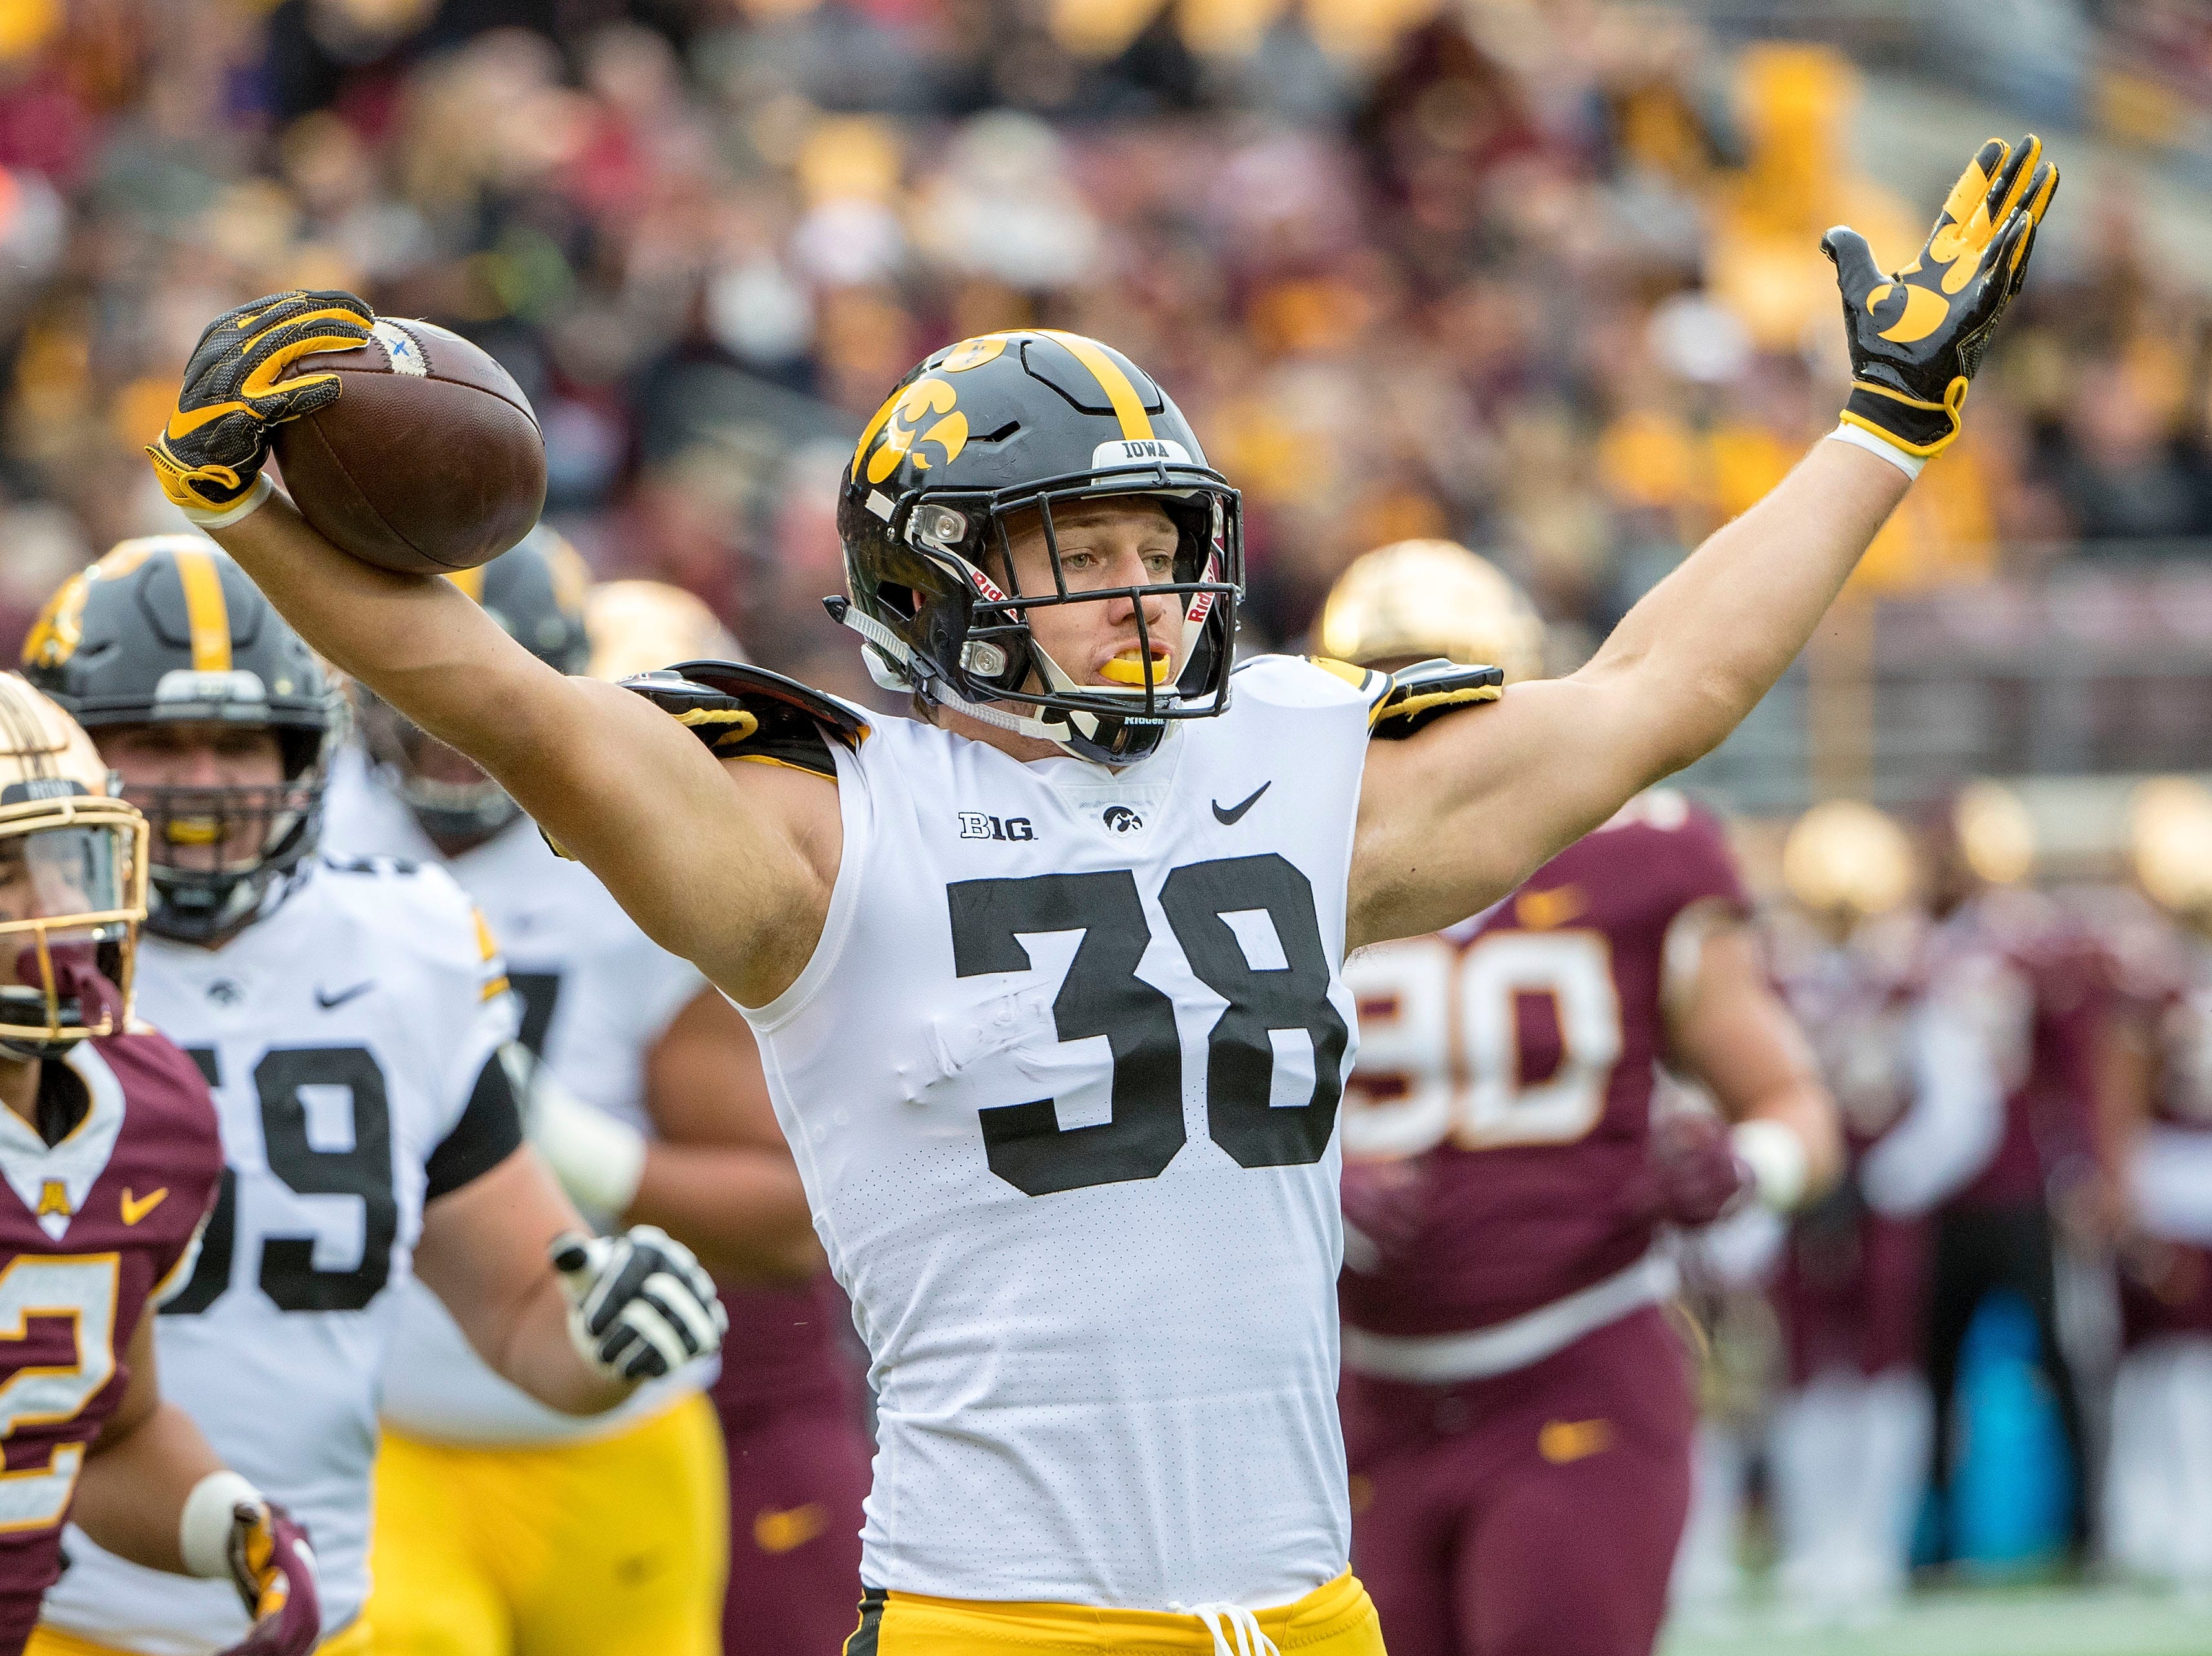 Minneapolis, MN, USA; Iowa Hawkeyes tight end T.J. Hockenson (38) celebrates after scoring a touchdown against the Minnesota Golden Gophers in the first quarter at TCF Bank Stadium.